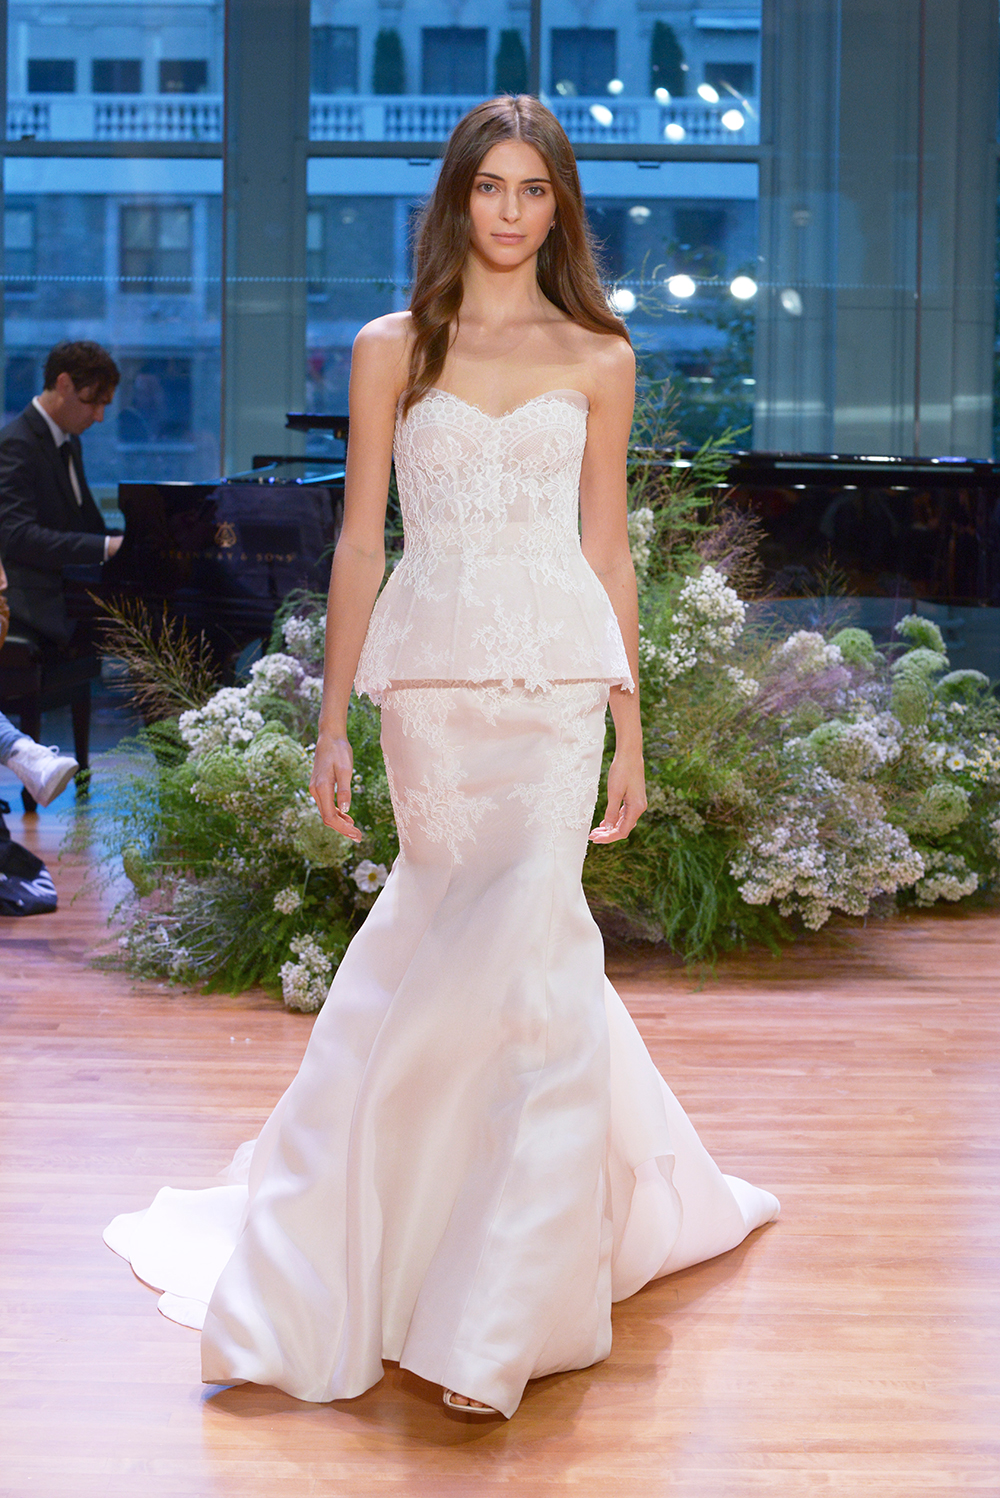 Faithful - Monique Lhuillier Fall 2017 Bridal Collection. www.theweddingnotebook.com